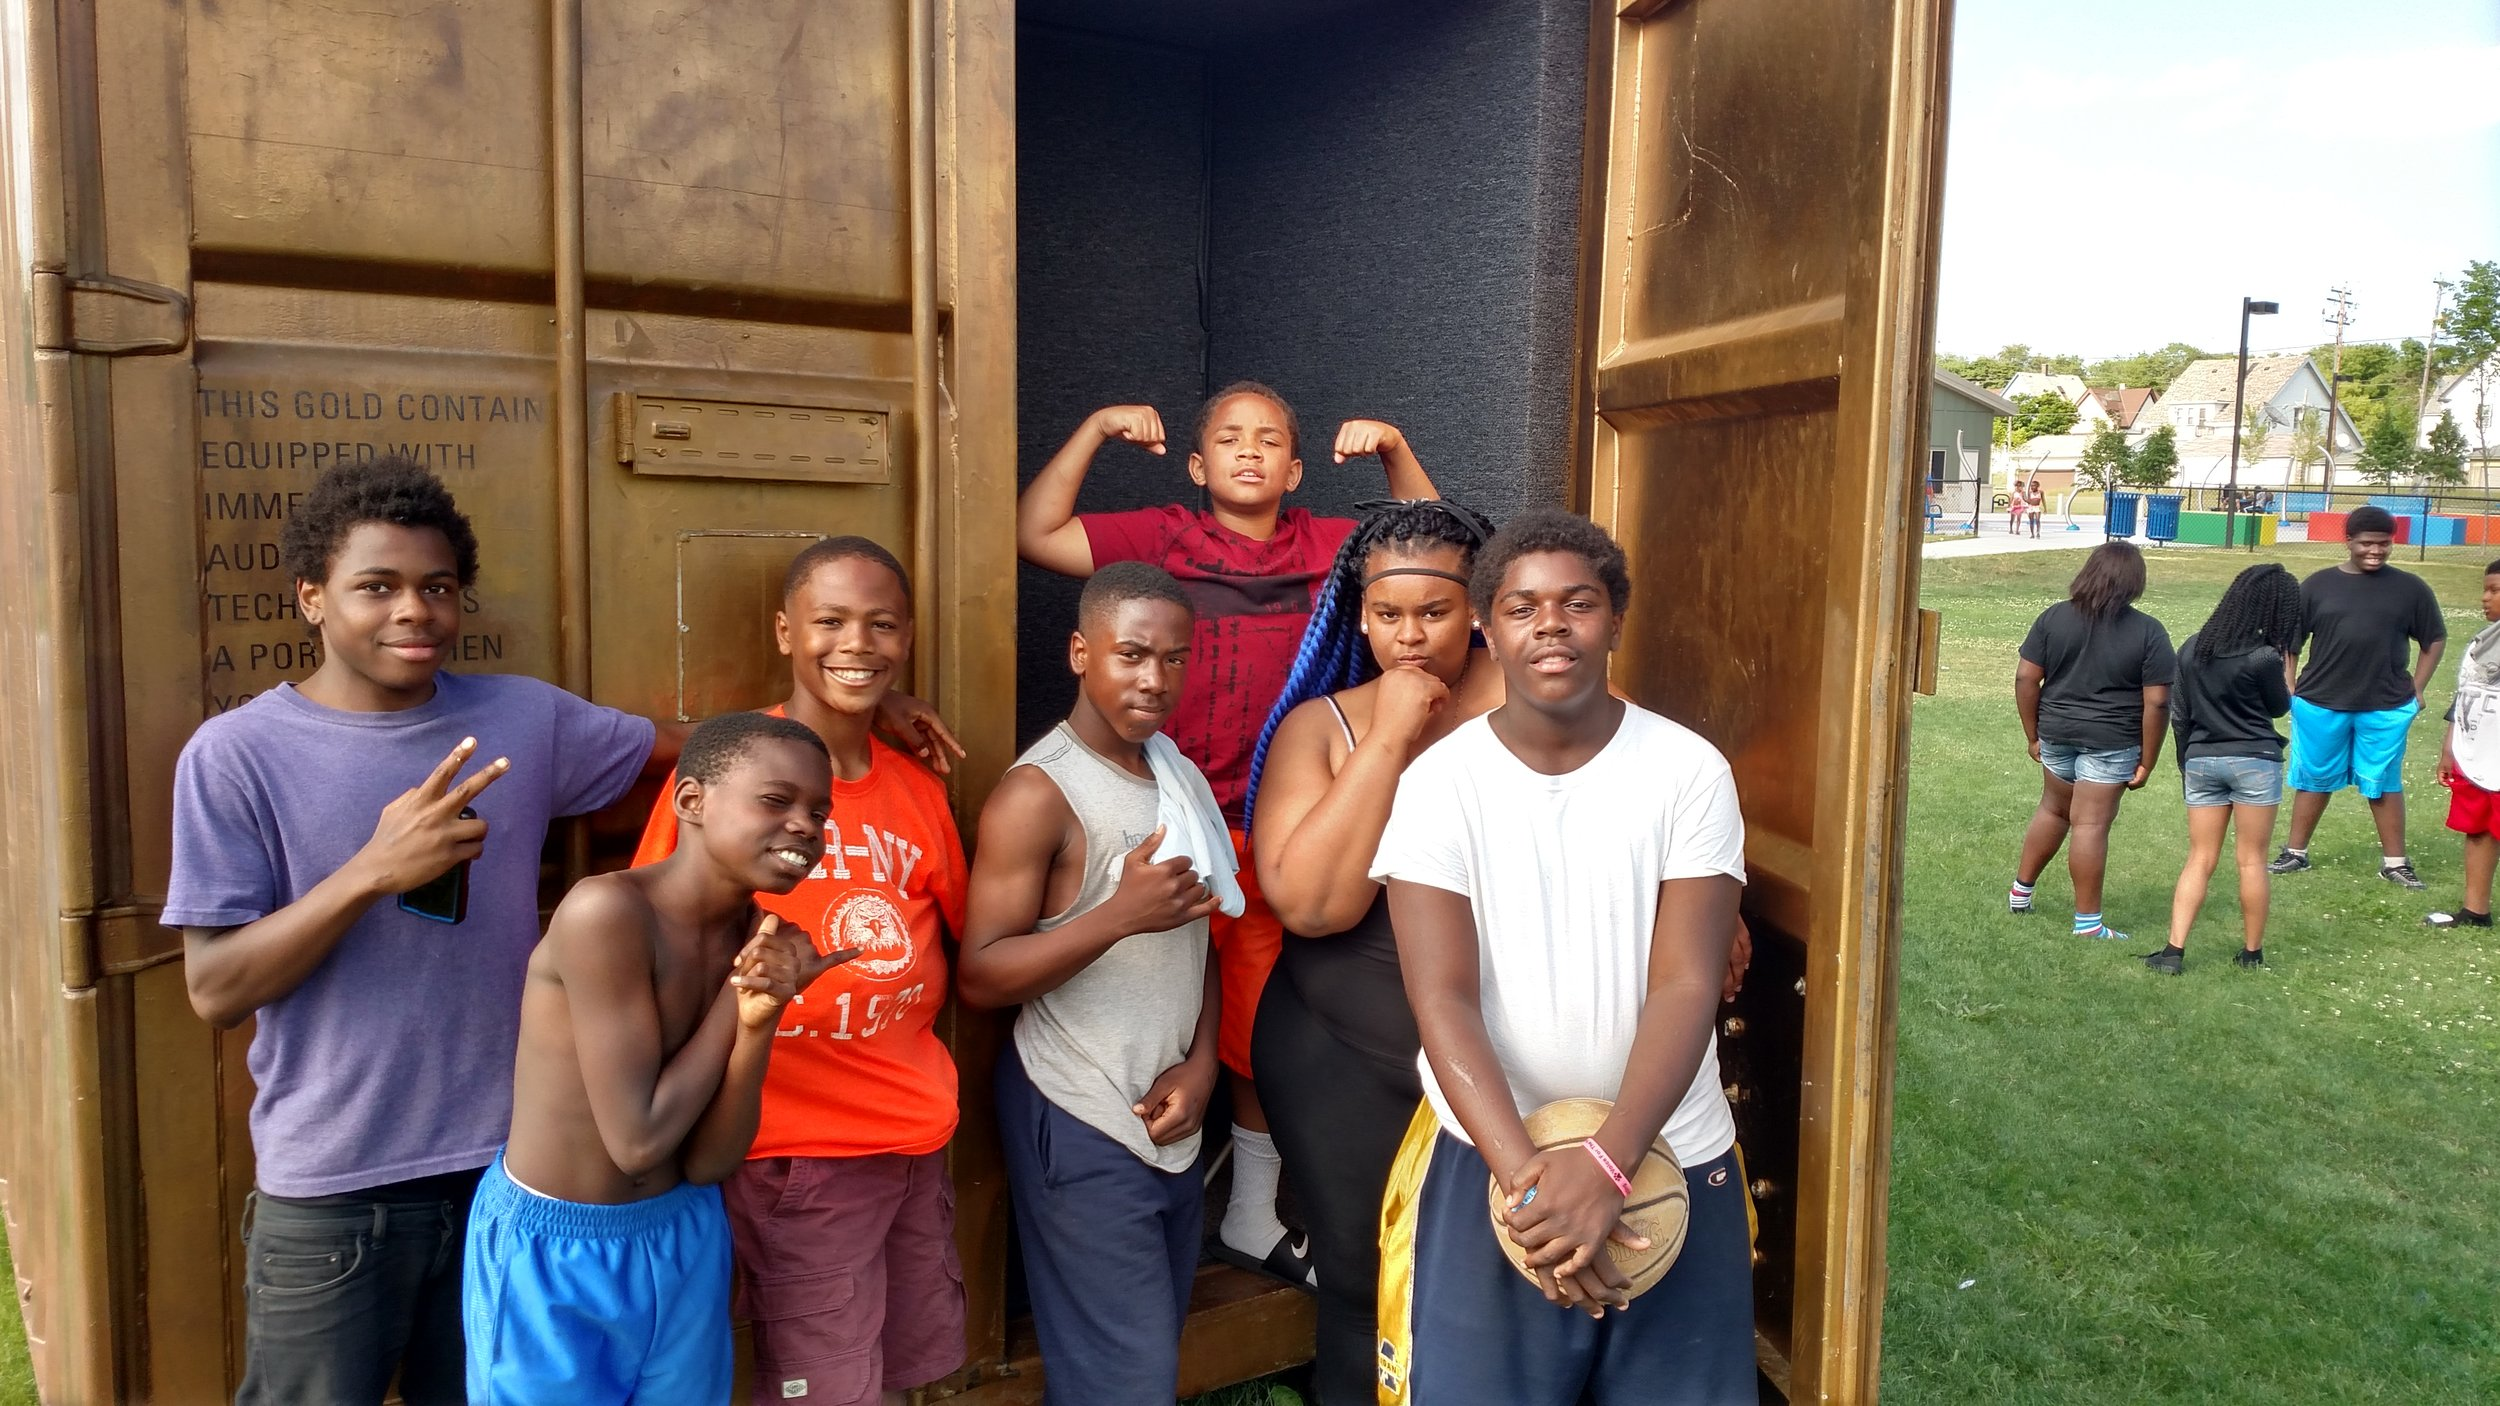 Young rugby players pose outside of the Milwaukee Portal after a sports dialogue